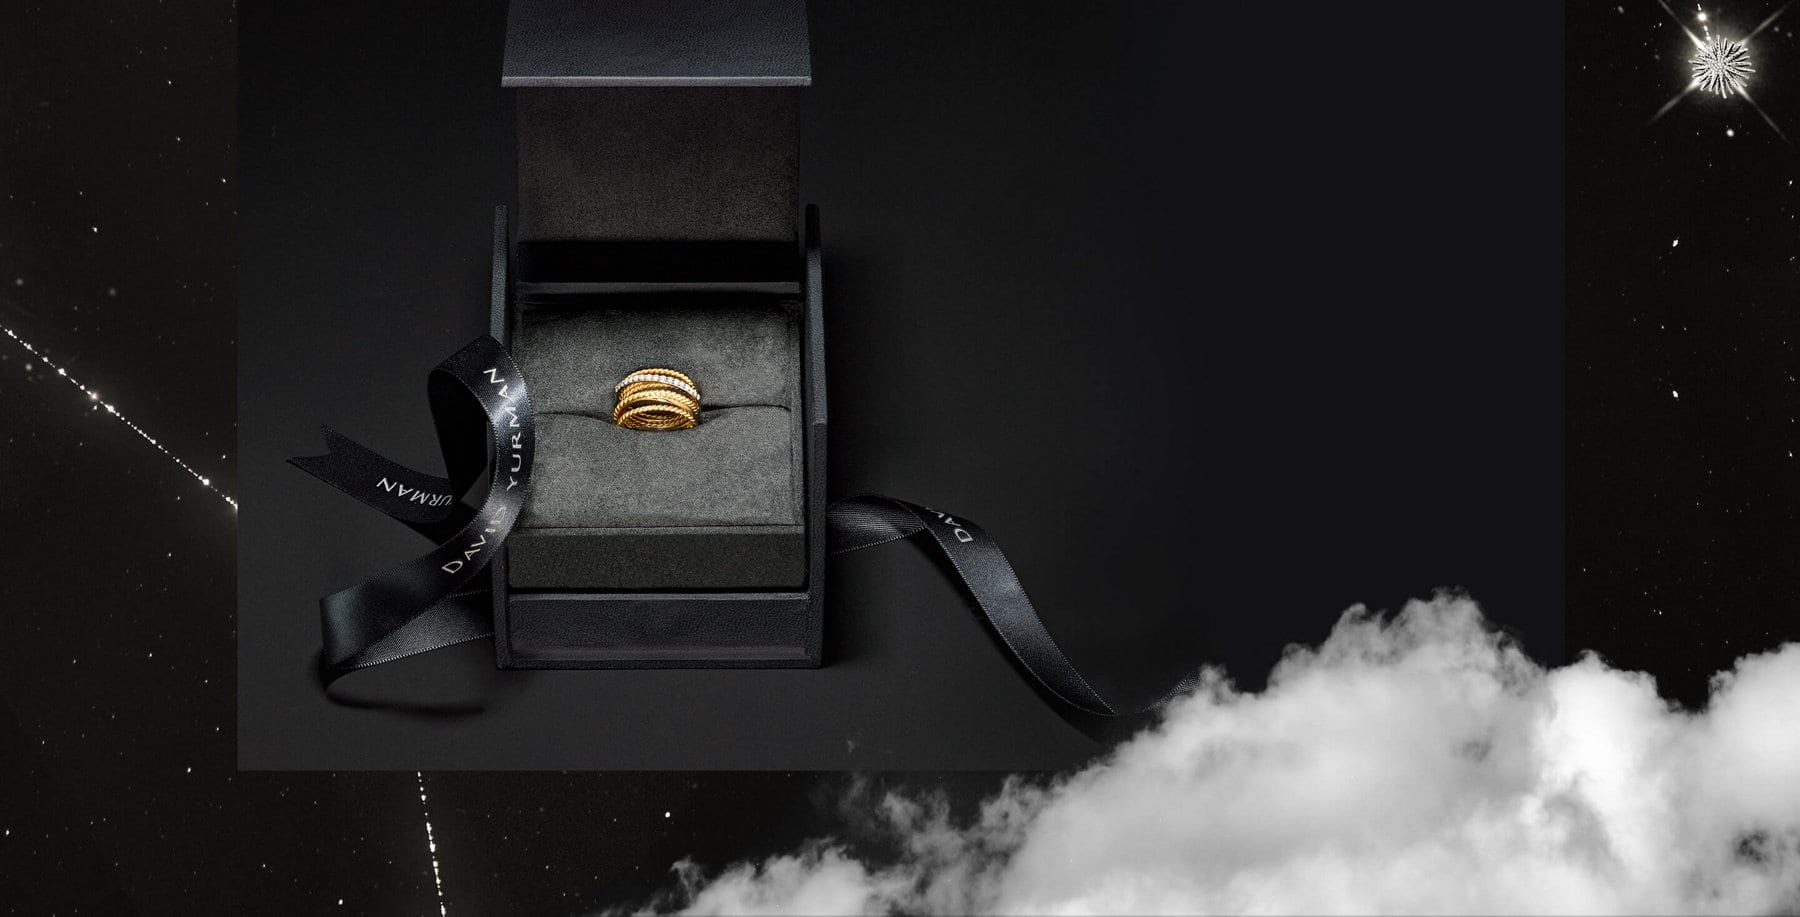 A color photo shows a David Yurman black ring box on a black background. This image is collaged in the center of a starry night sky with a white cloud.